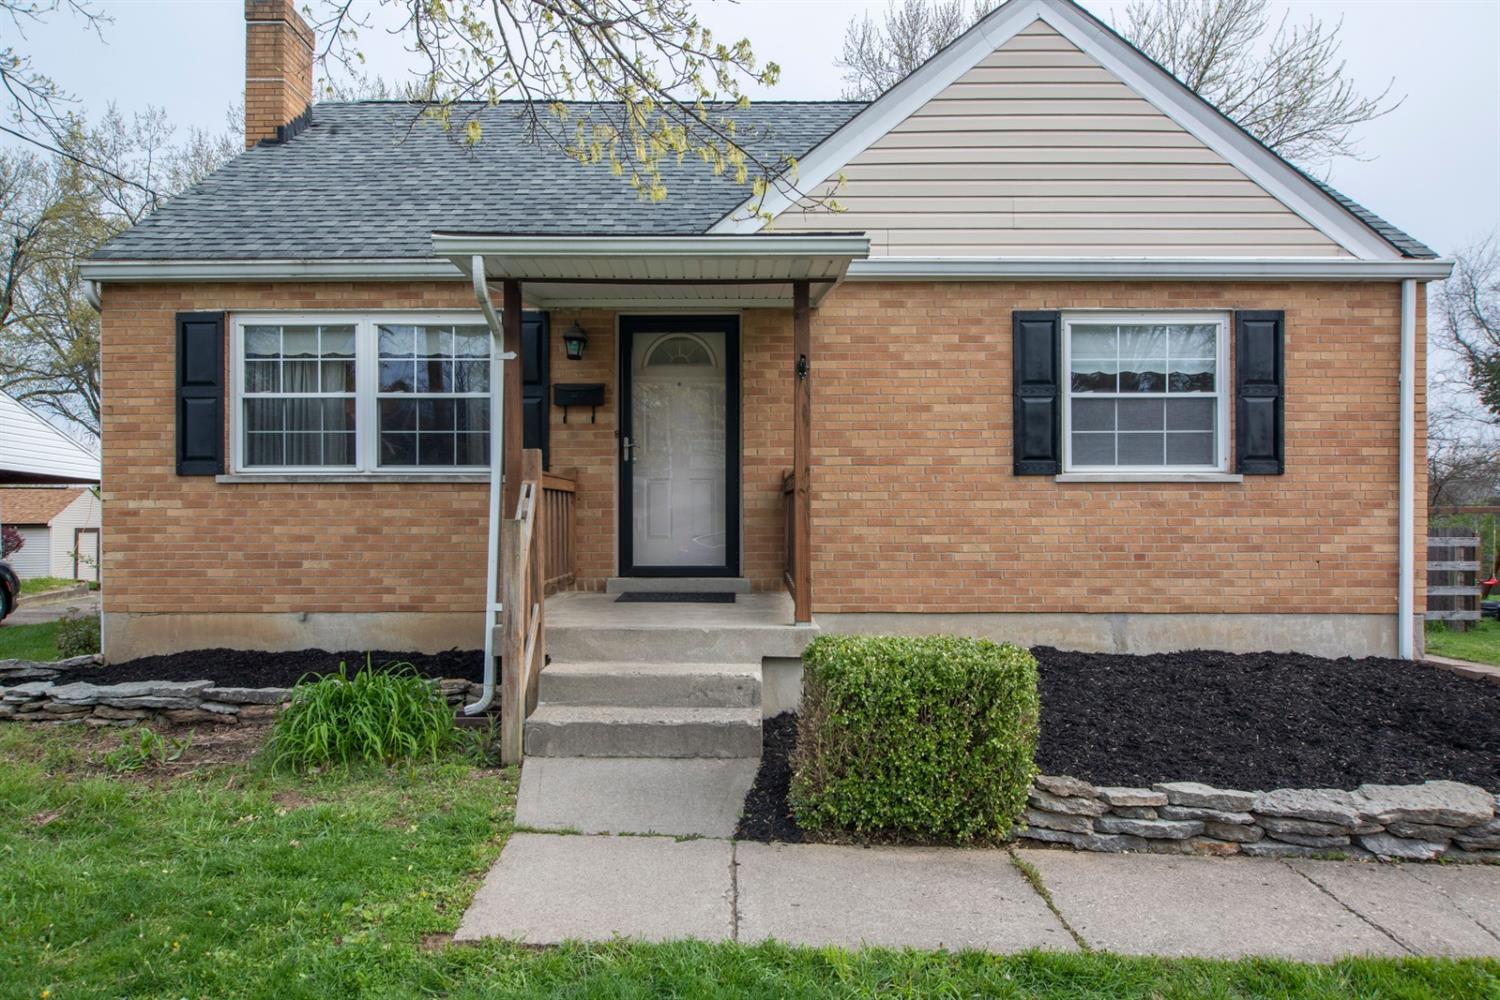 3310 Harry Lee Ln Groesbeck, OH